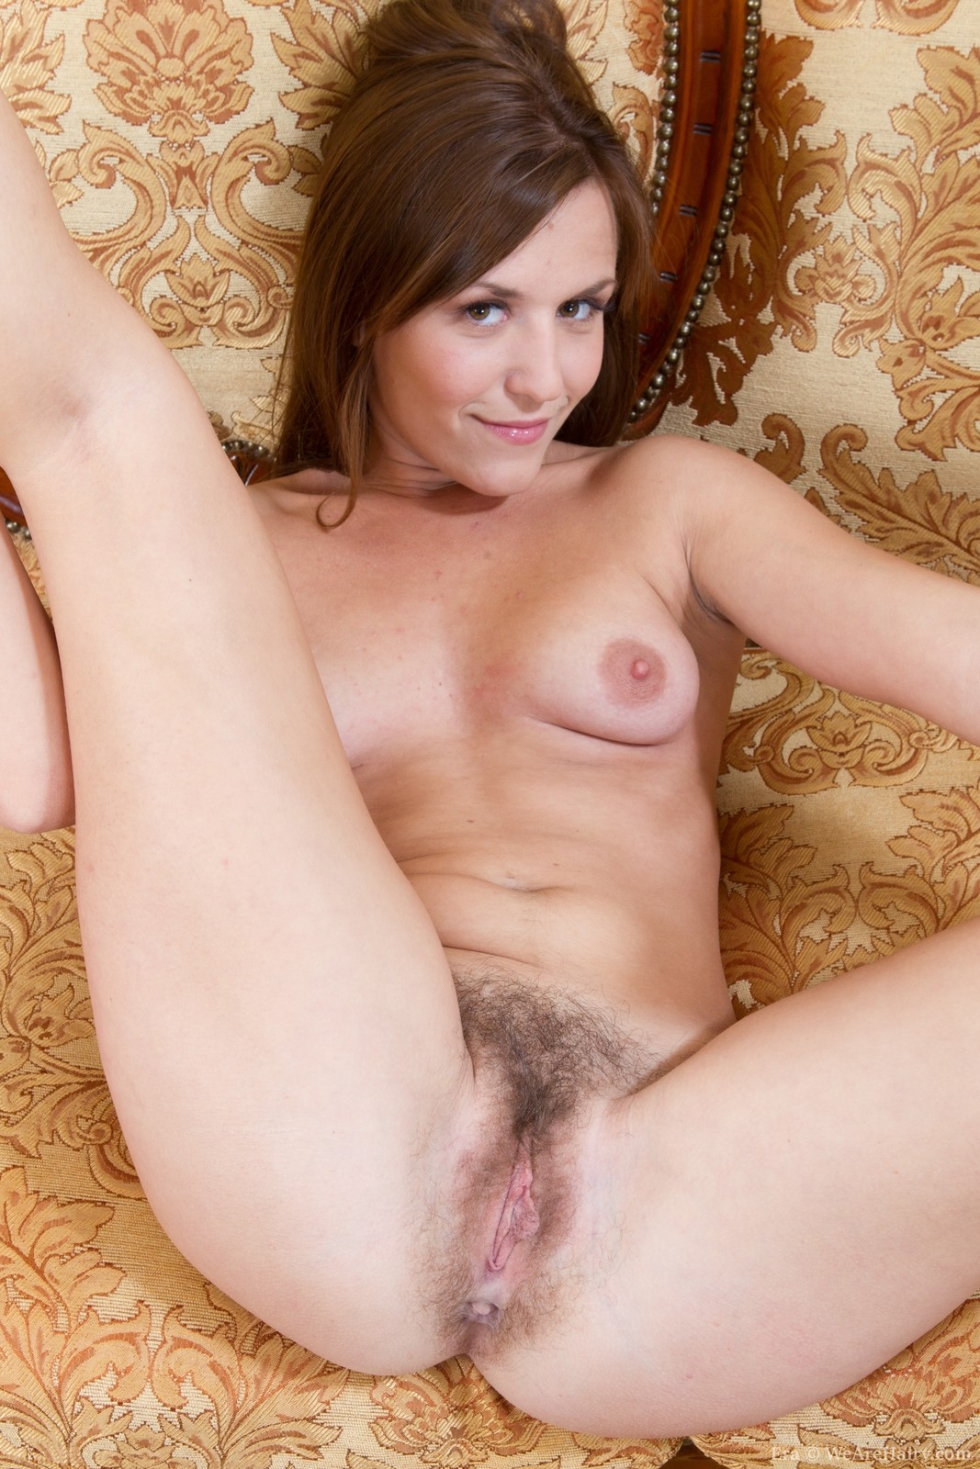 This rather Nude girl hairy